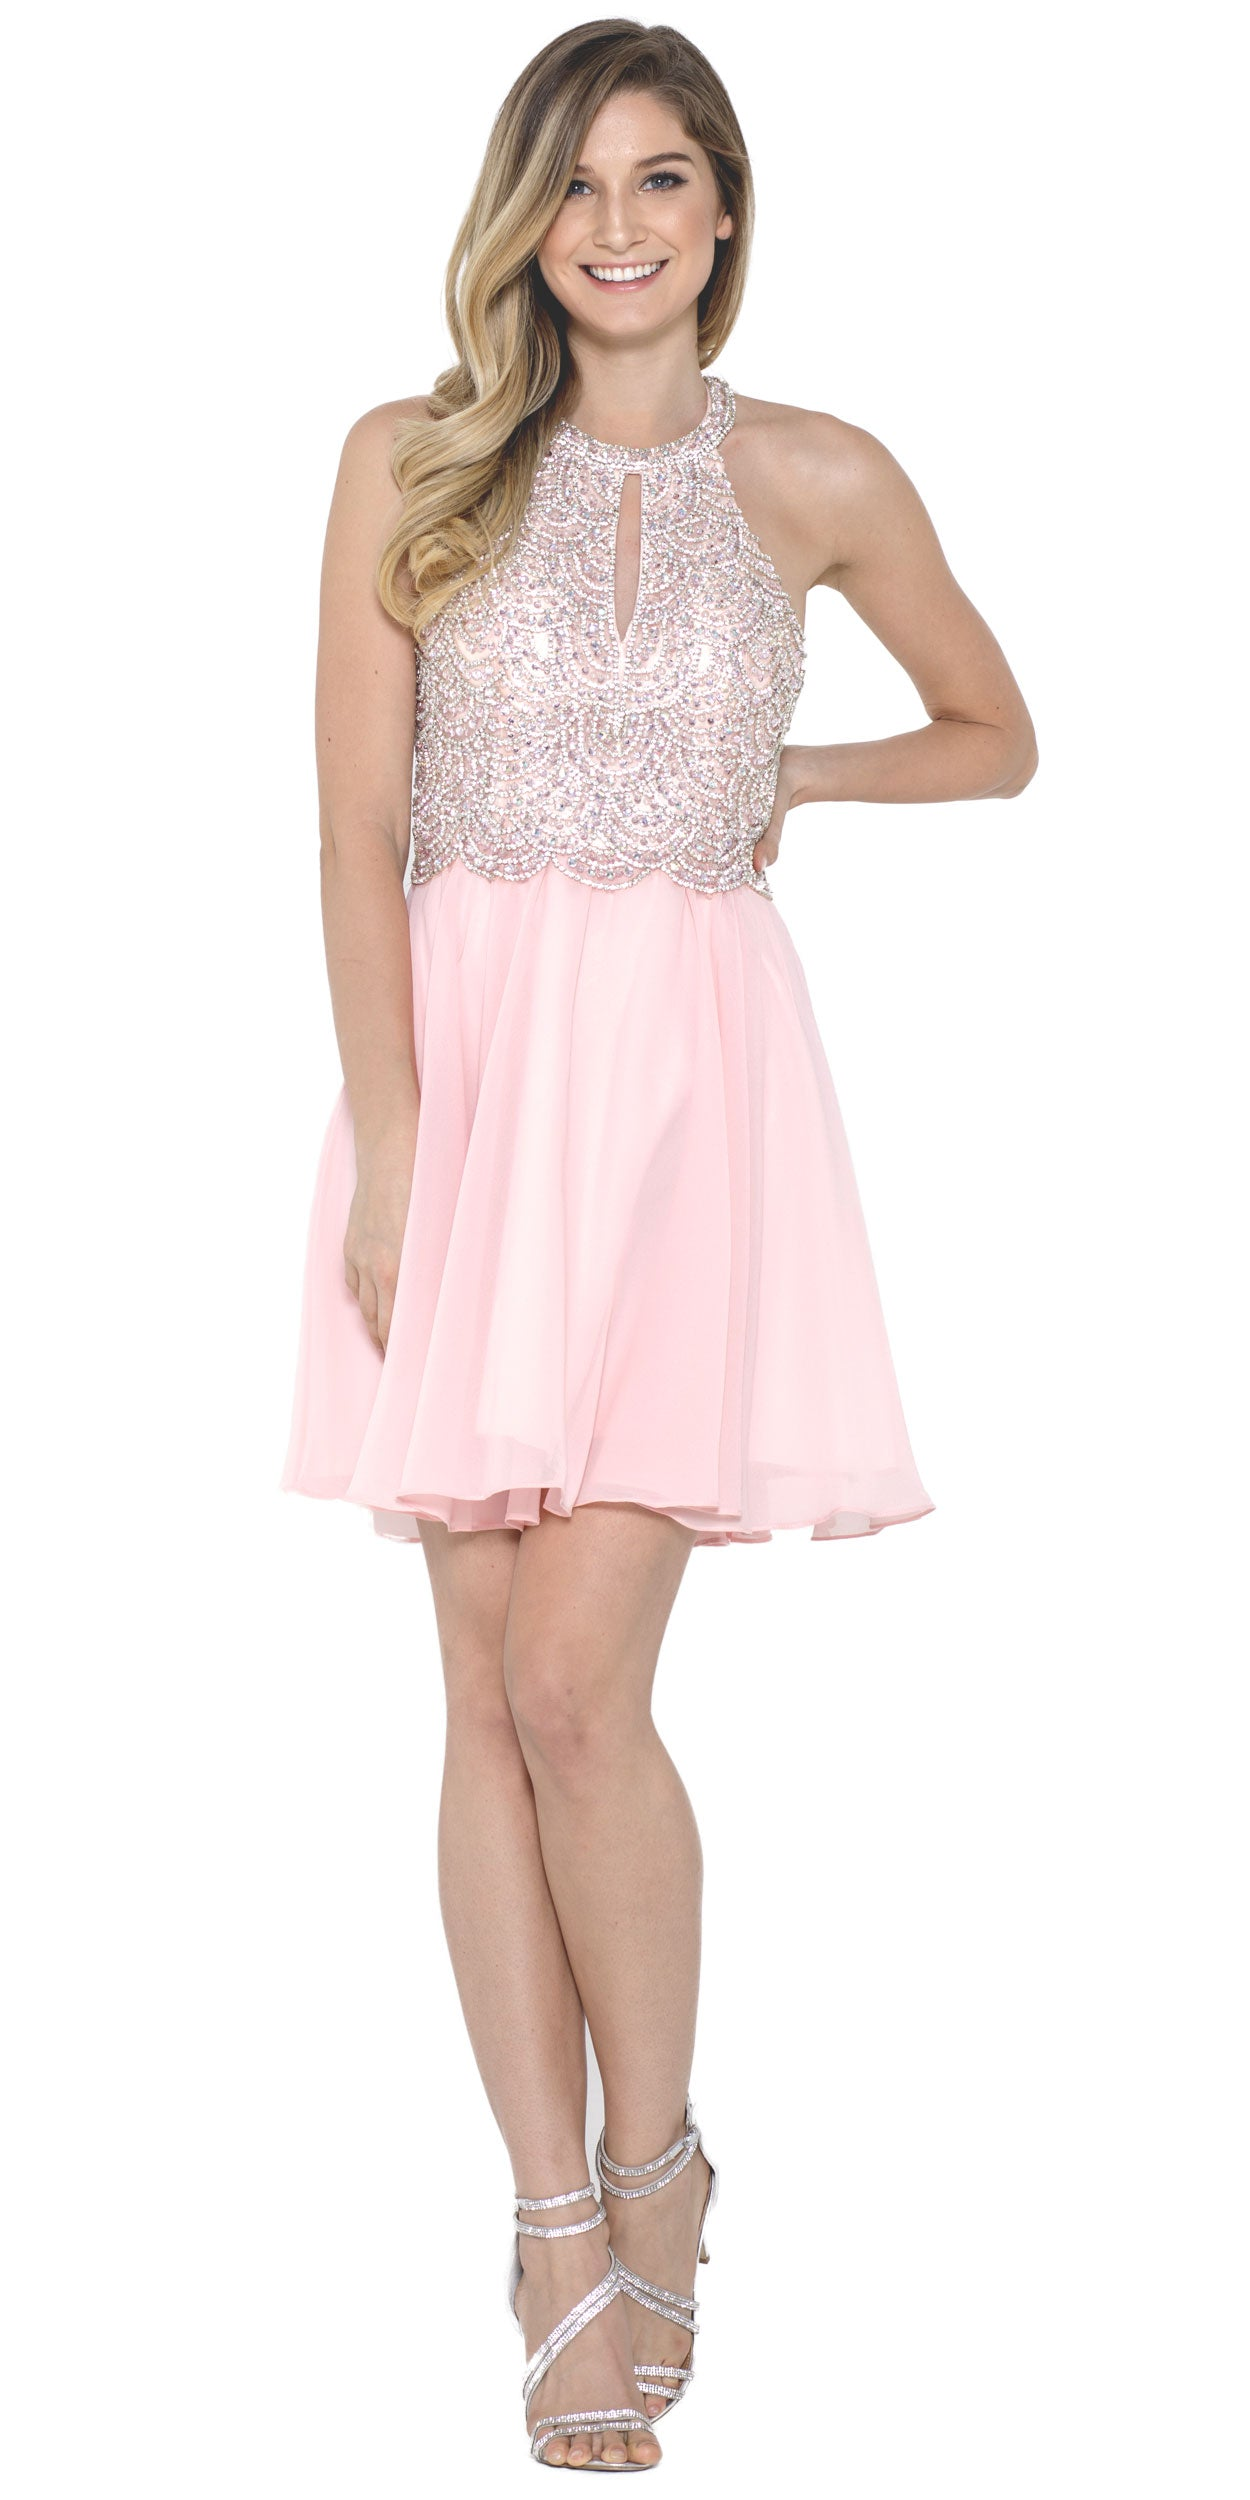 Main image of Halter Neck Beaded Bust Short Chiffon Prom Party  dress